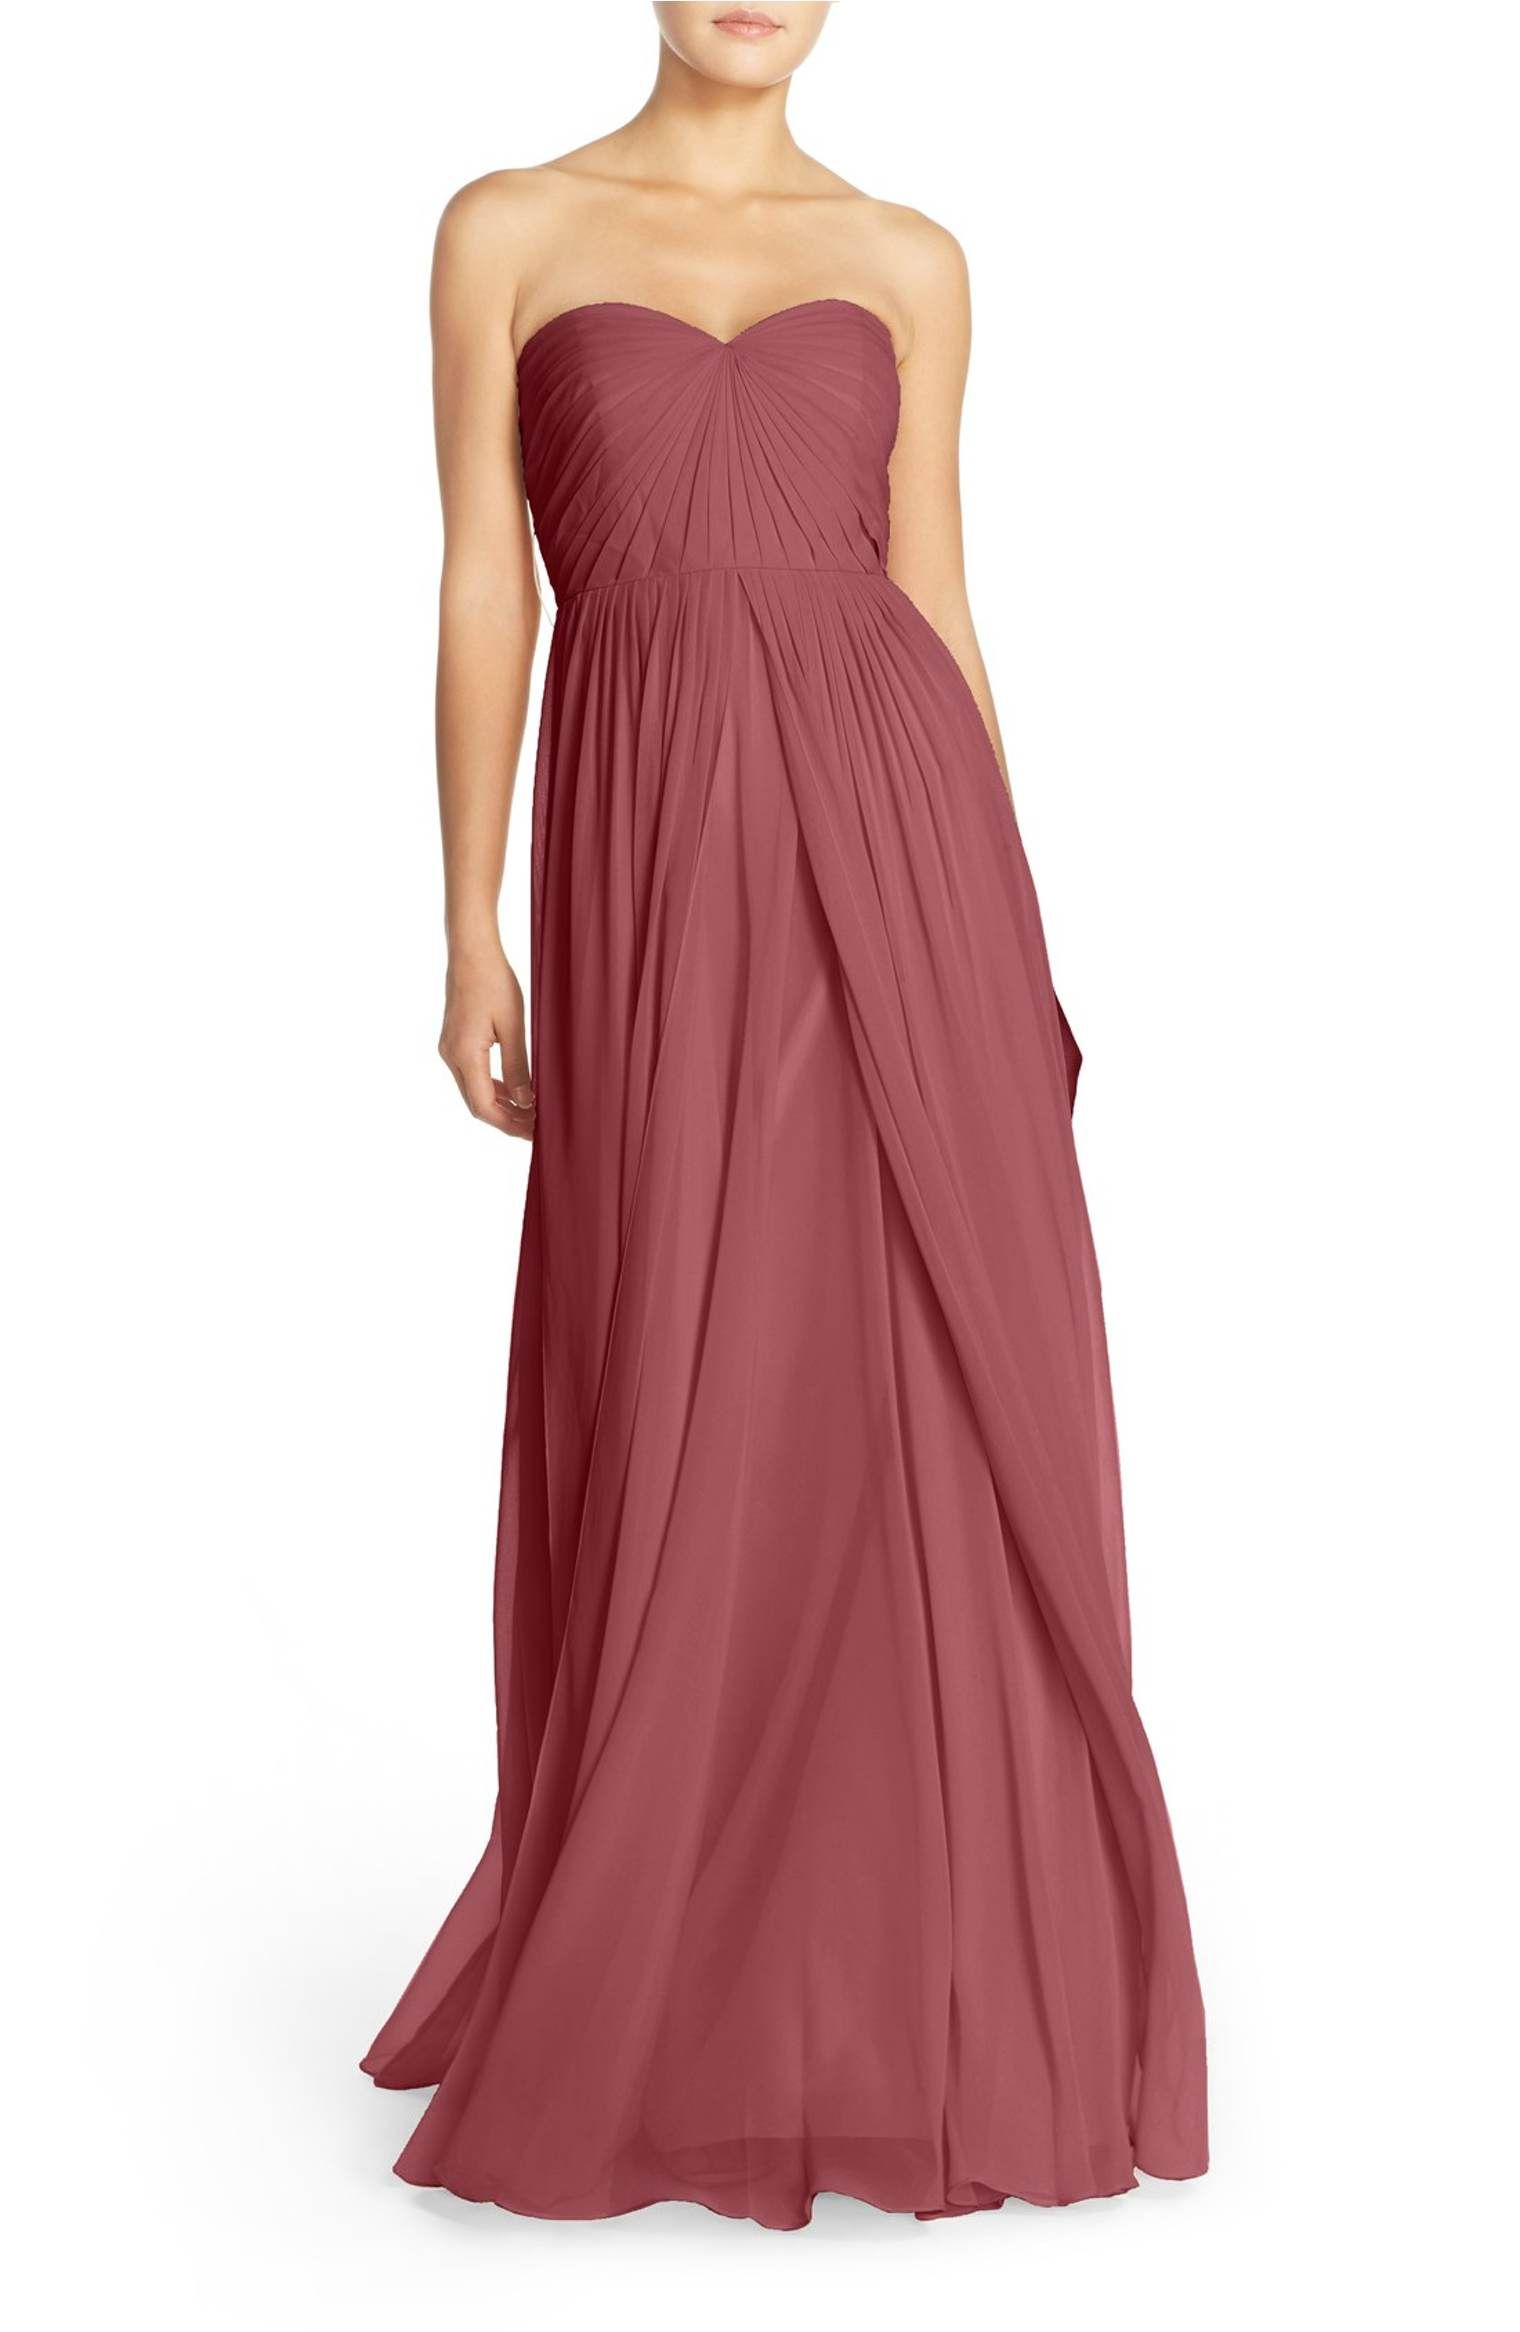 6dd850486379 $285 Nordstrom - Jenny Yoo Mira Convertible Strapless Pleat Chiffon Gown  (Cinnamon Rose)